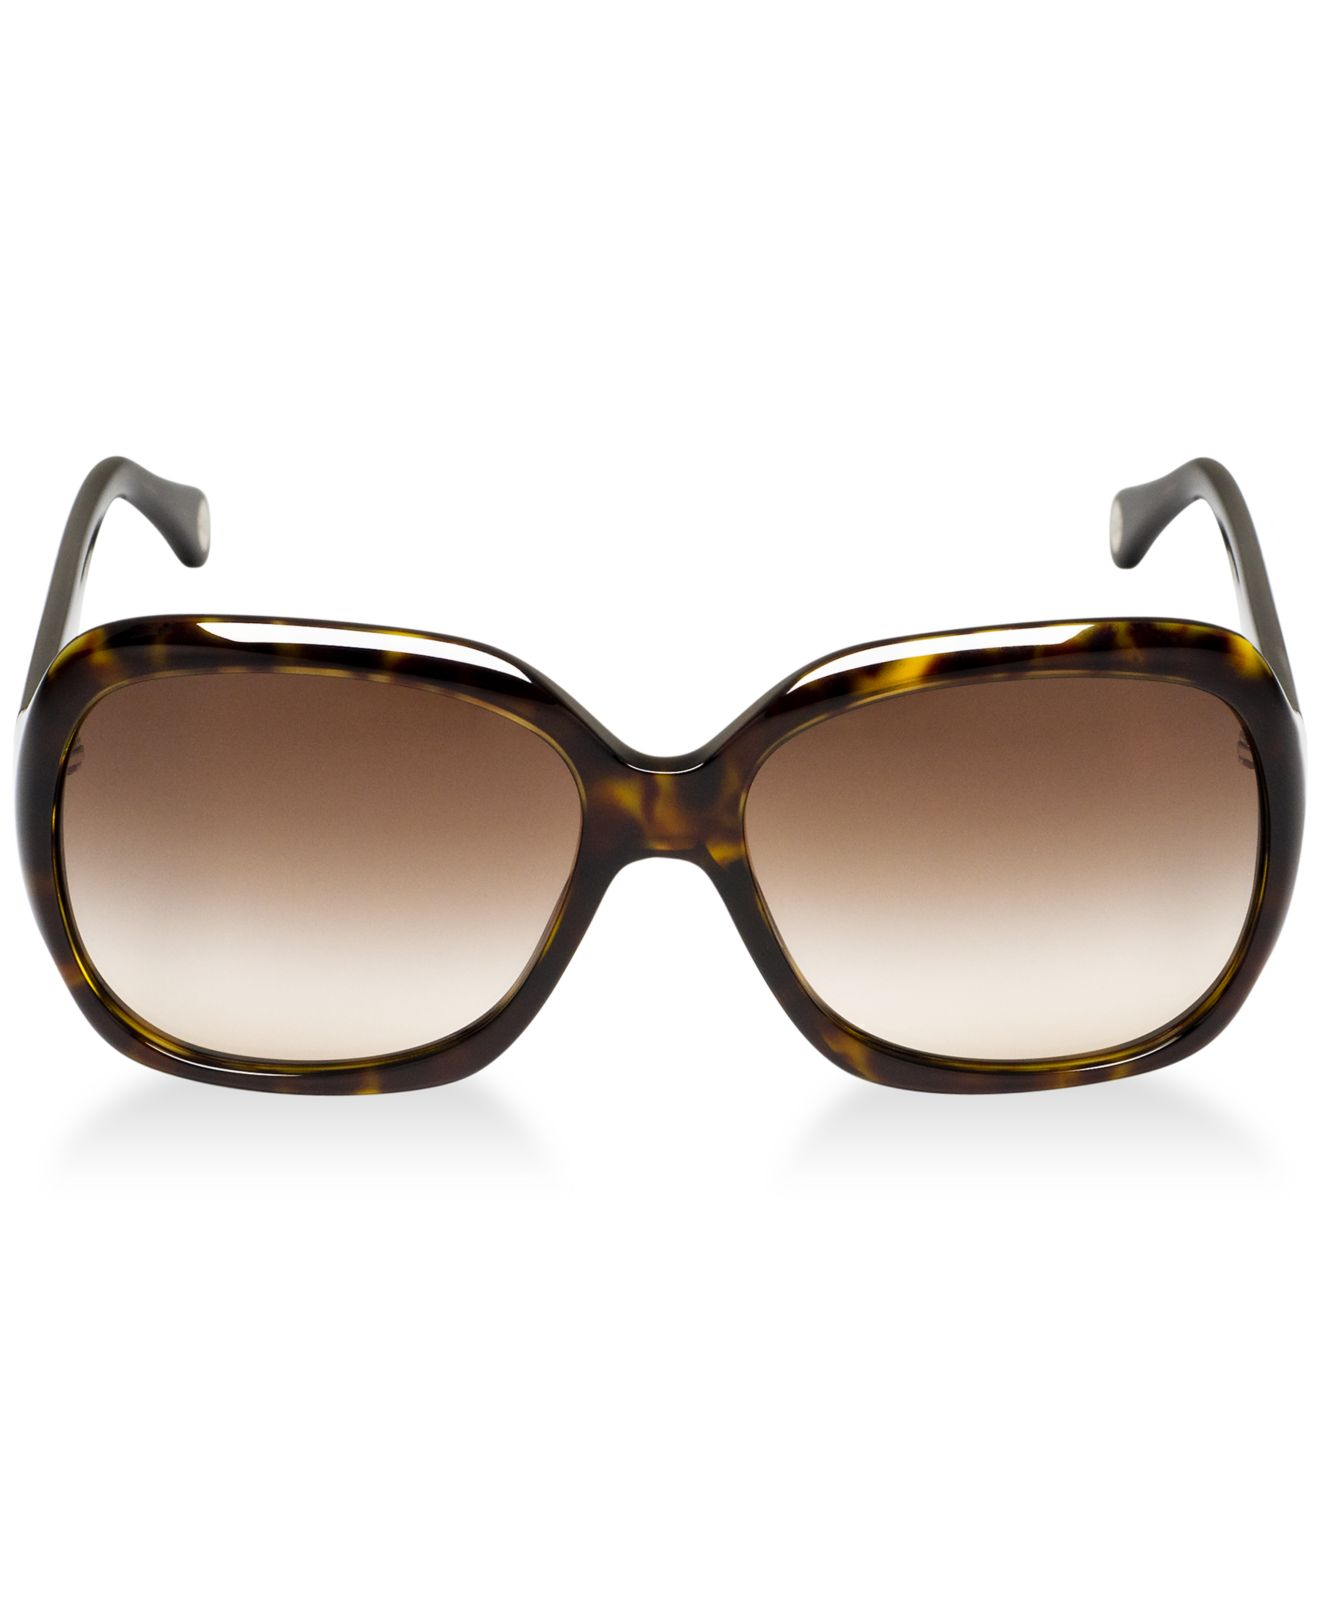 Dolce And Gabbana Sunglasses Foldable  dolce gabbana dolce gabbana sunglasses dolce and gabbana in